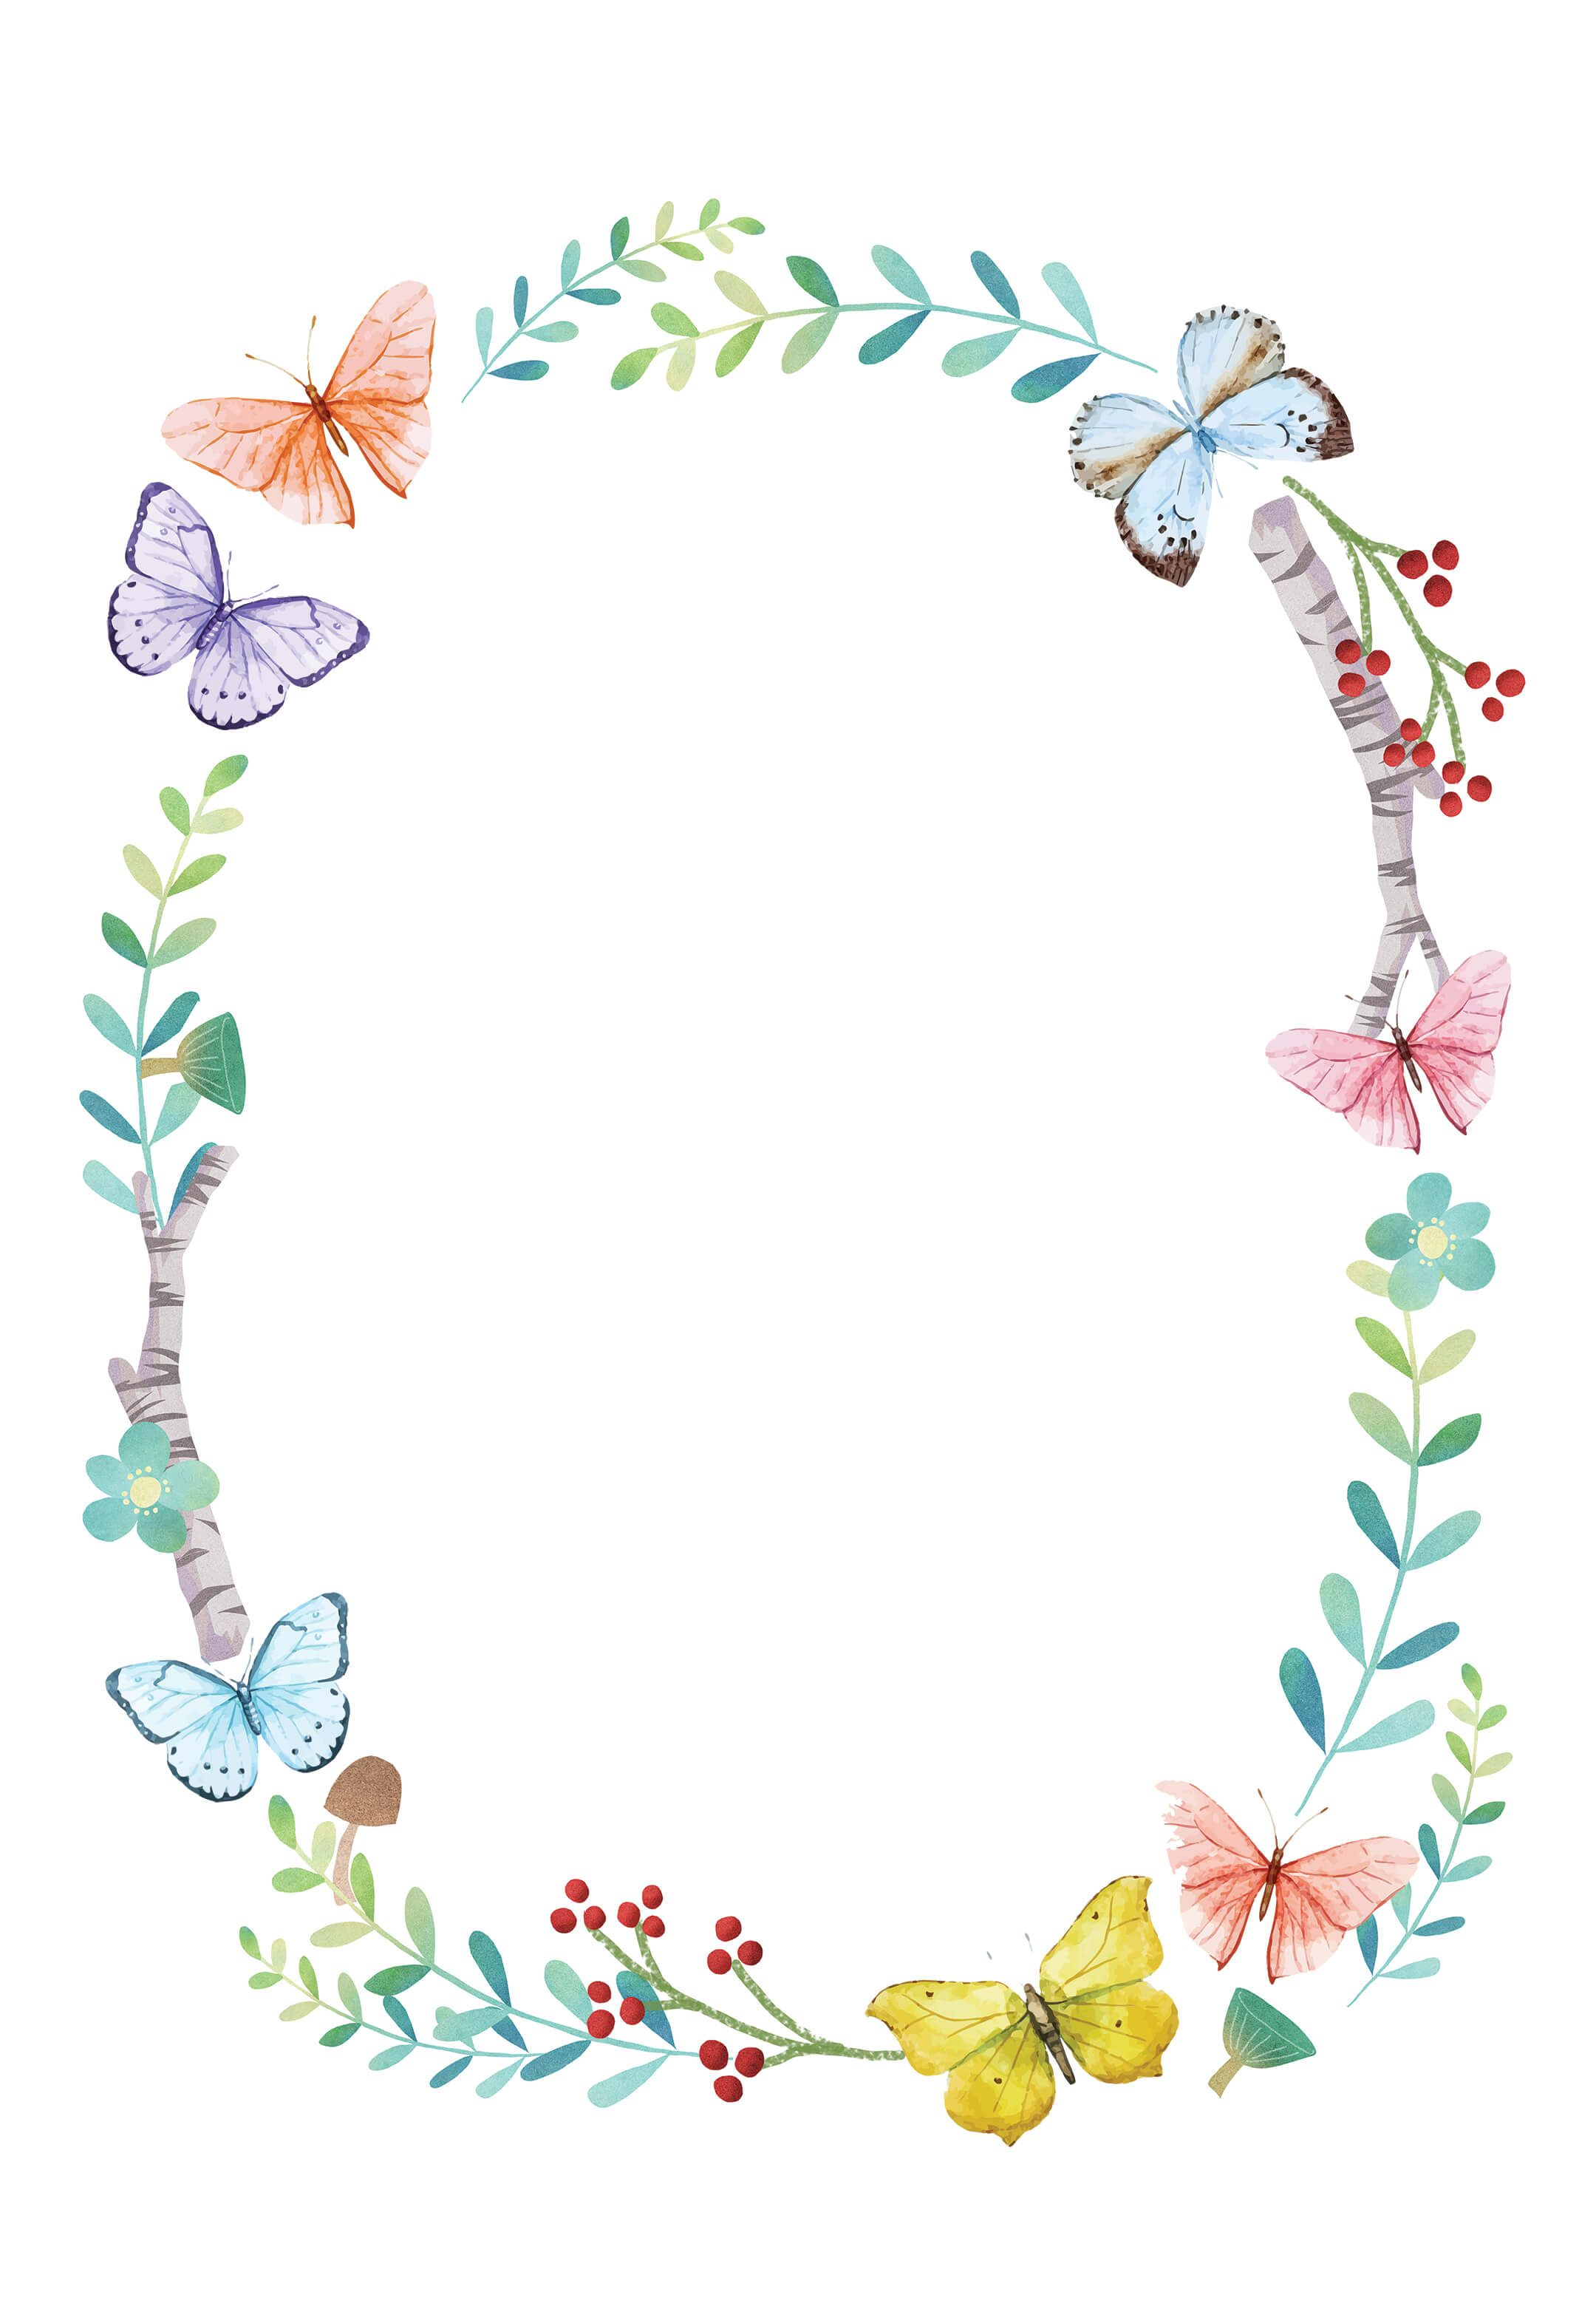 Butterfly Invitations Templates Free : butterfly, invitations, templates, Butterfly, Kisses, Shower, Invitation, Template, (Free), Greetings, Island, Invitations,, Templates,